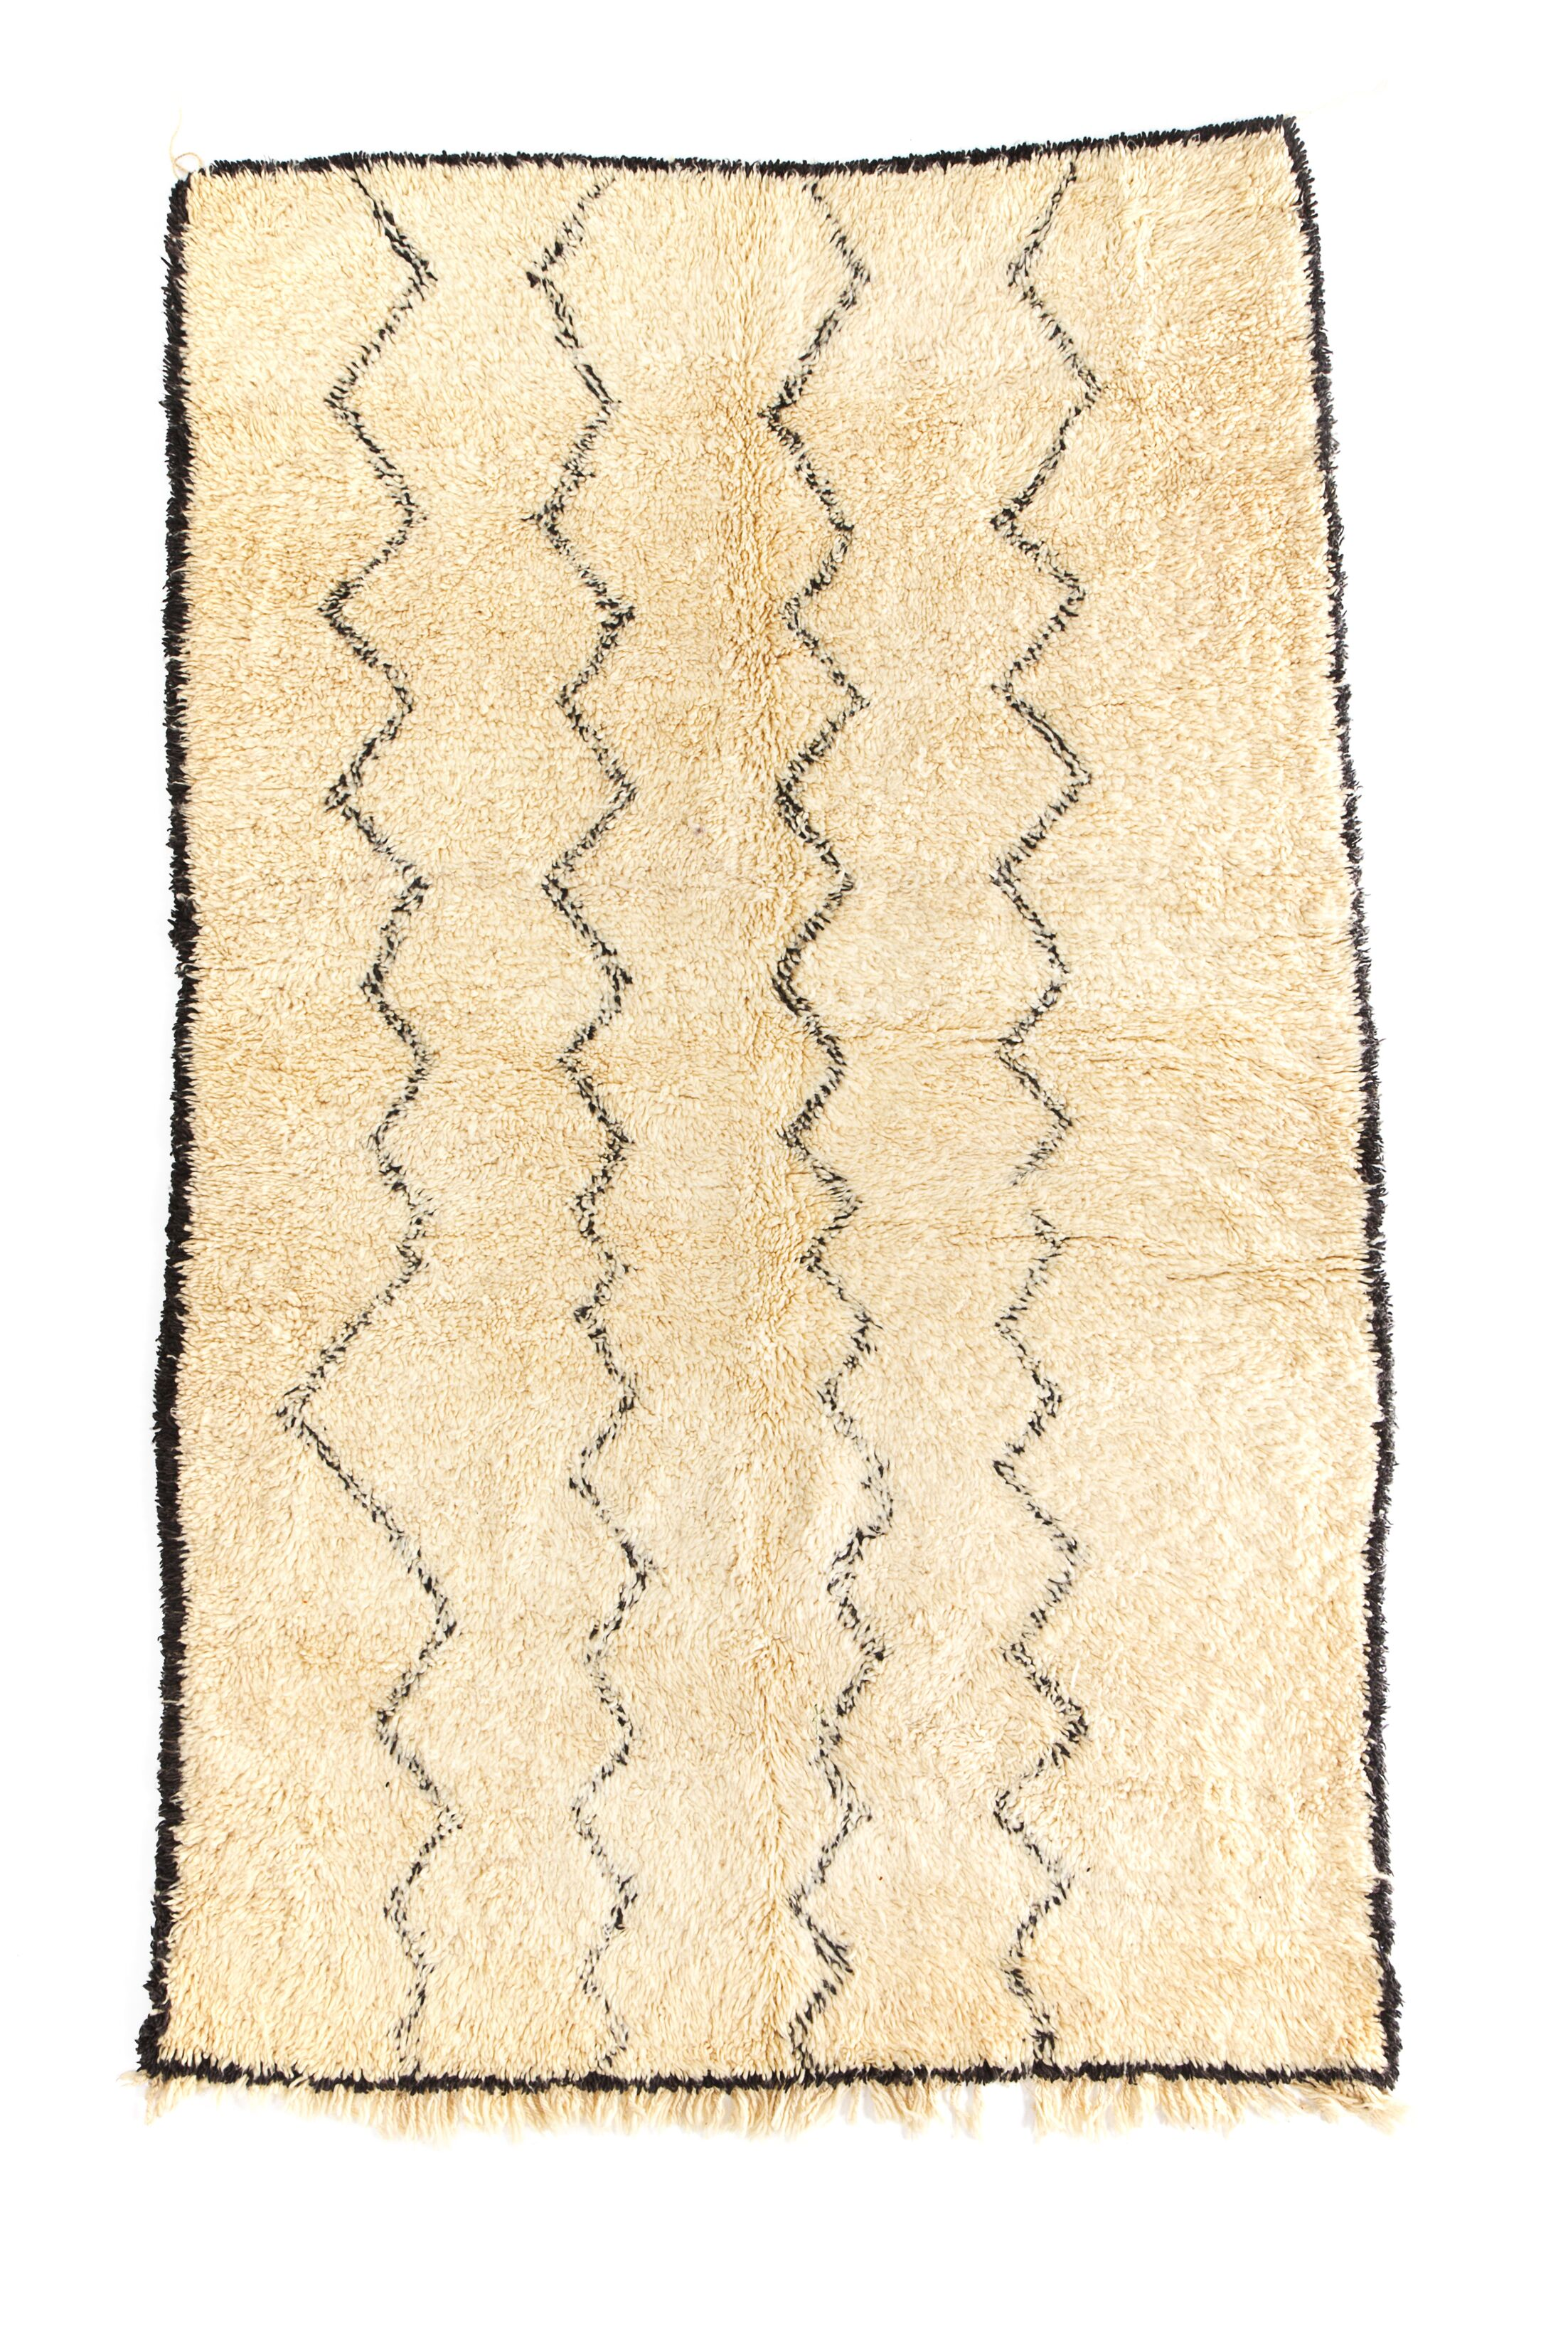 Beni Ourain Hand-Knotted Ivory Area Rug Rug Size: 5'3